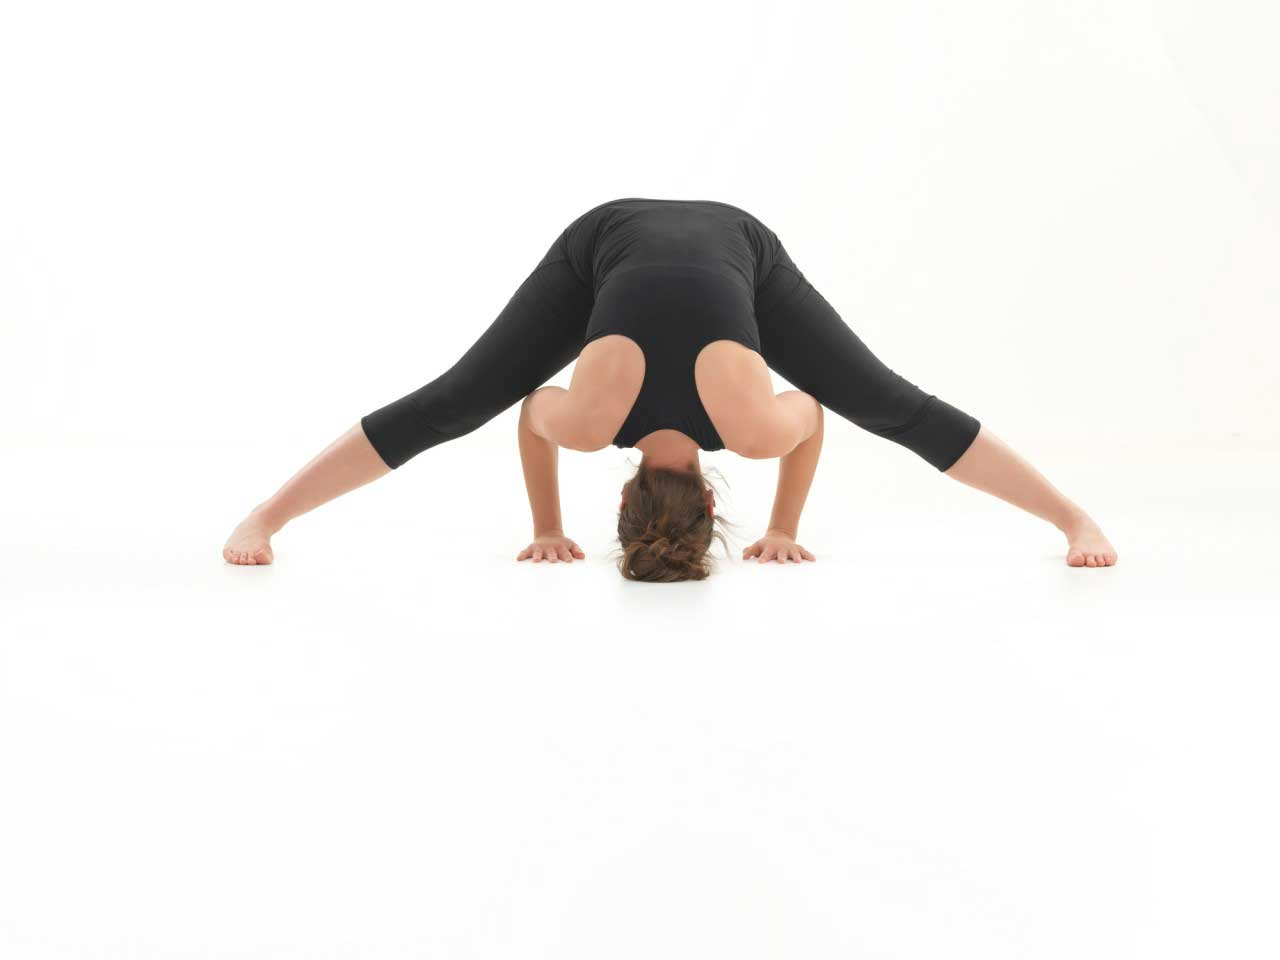 Yoga Pose of the Week: Prasarita Padottanasana A or Wide-legged Forward Bend